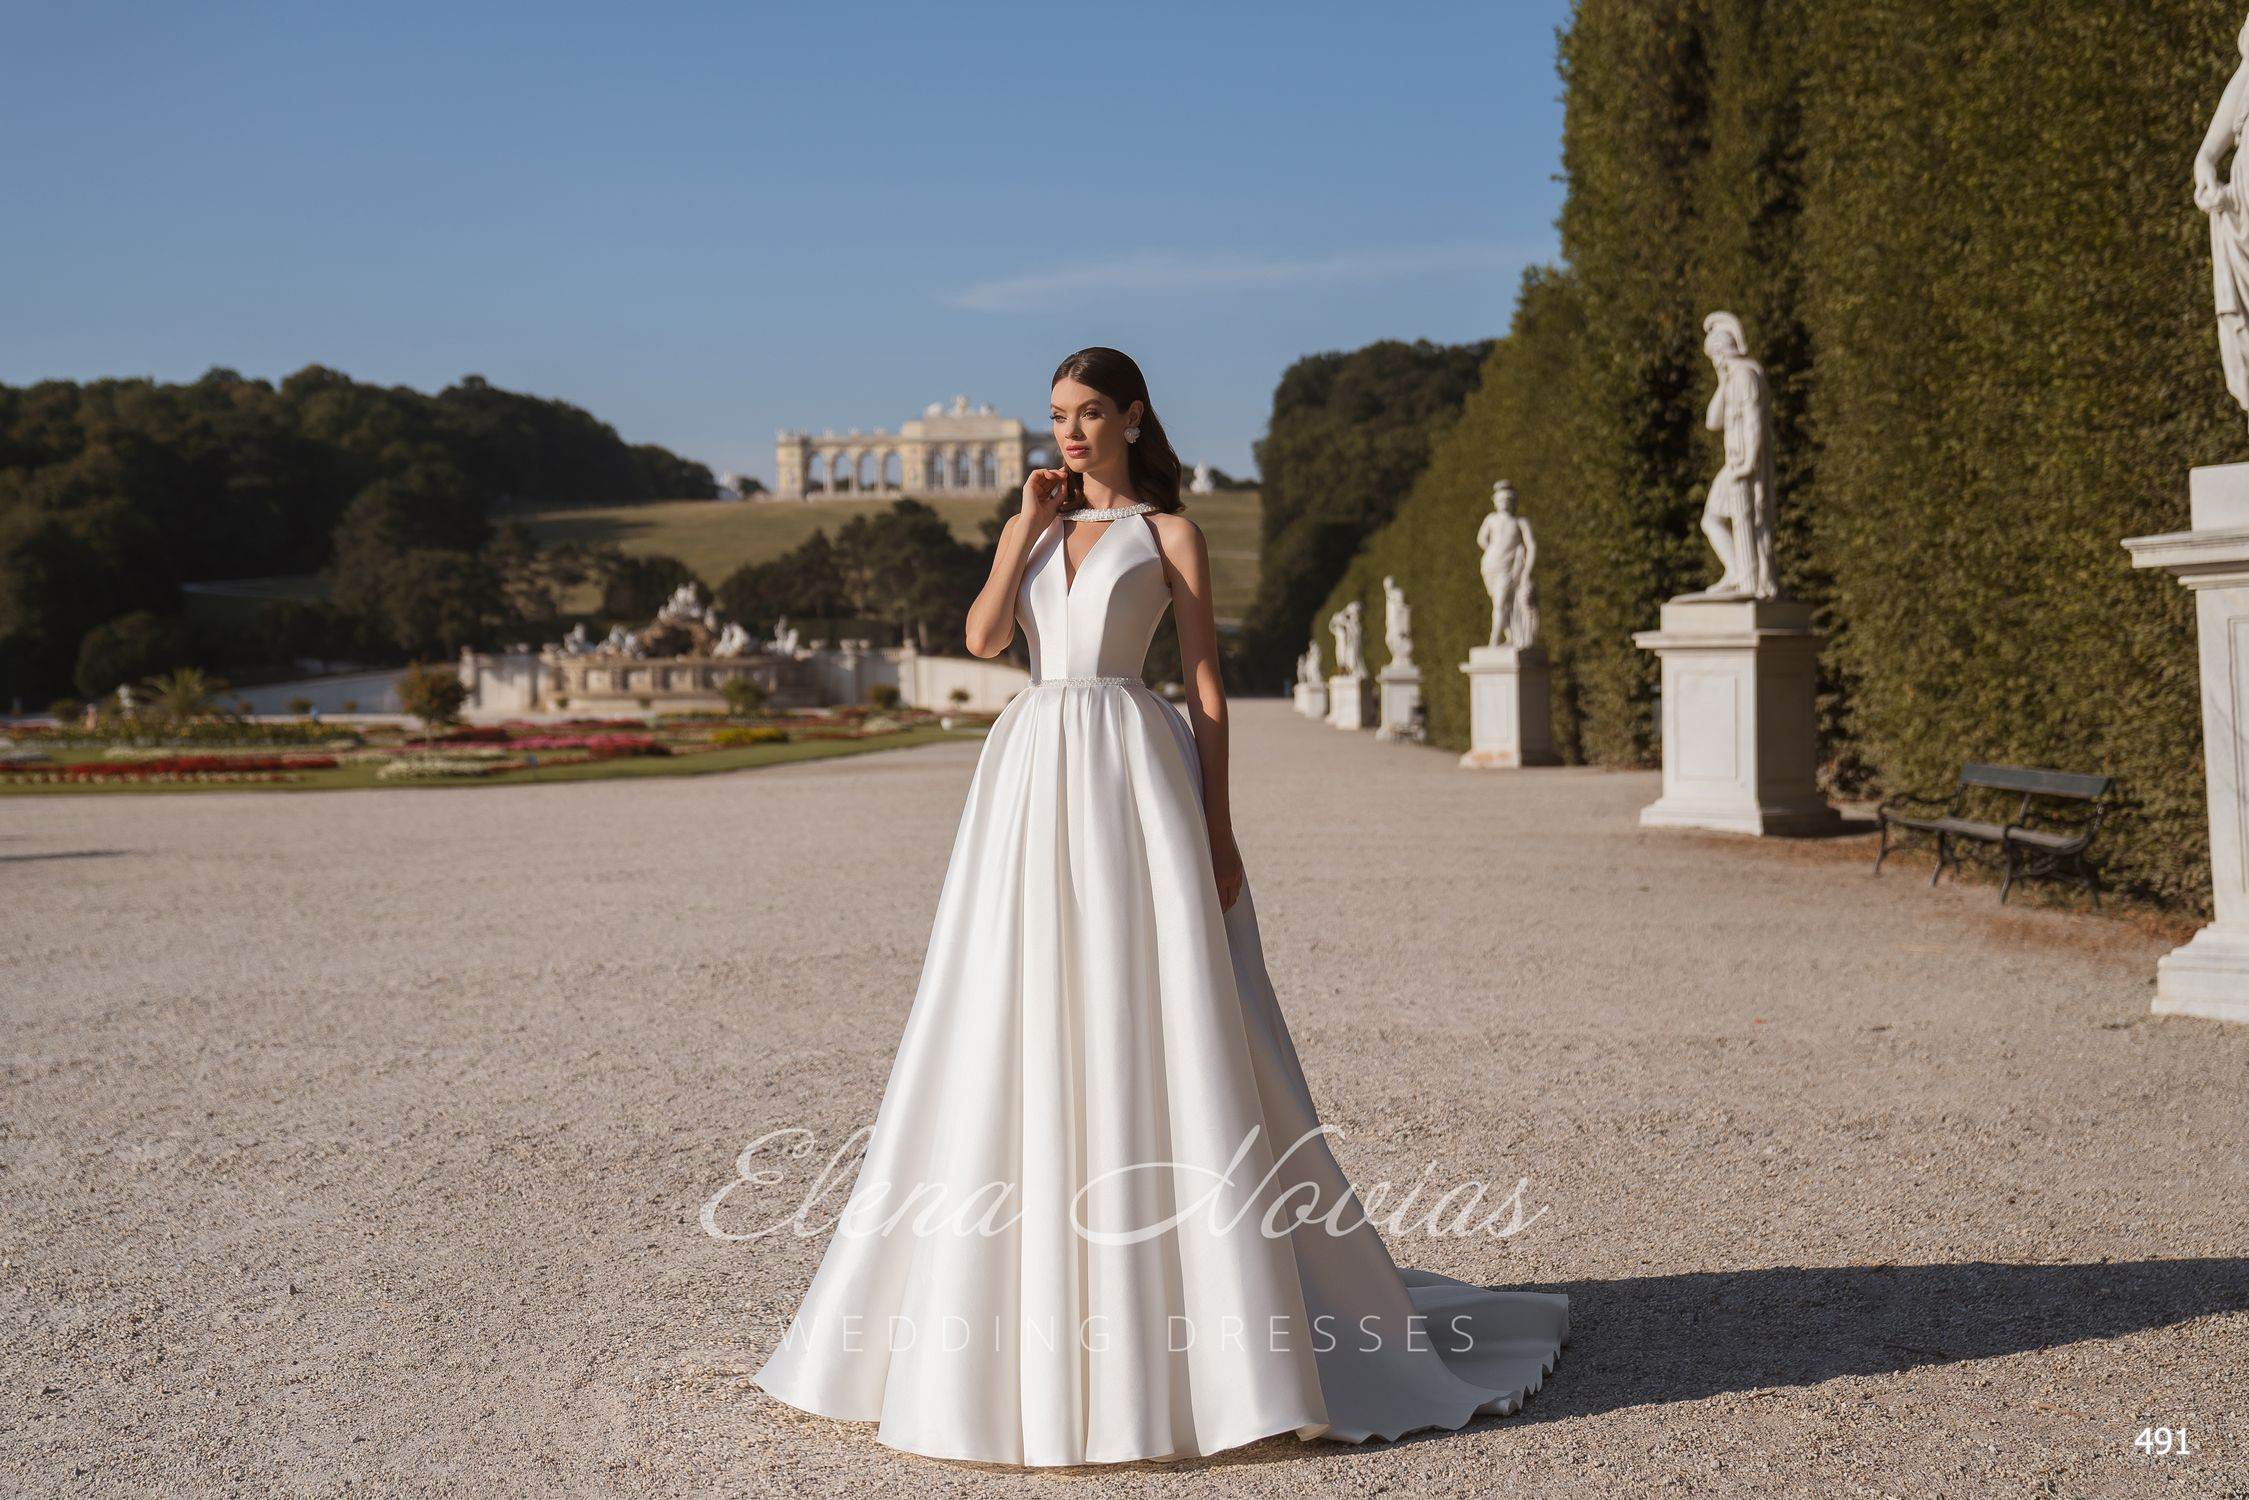 Wedding dresses 491 1